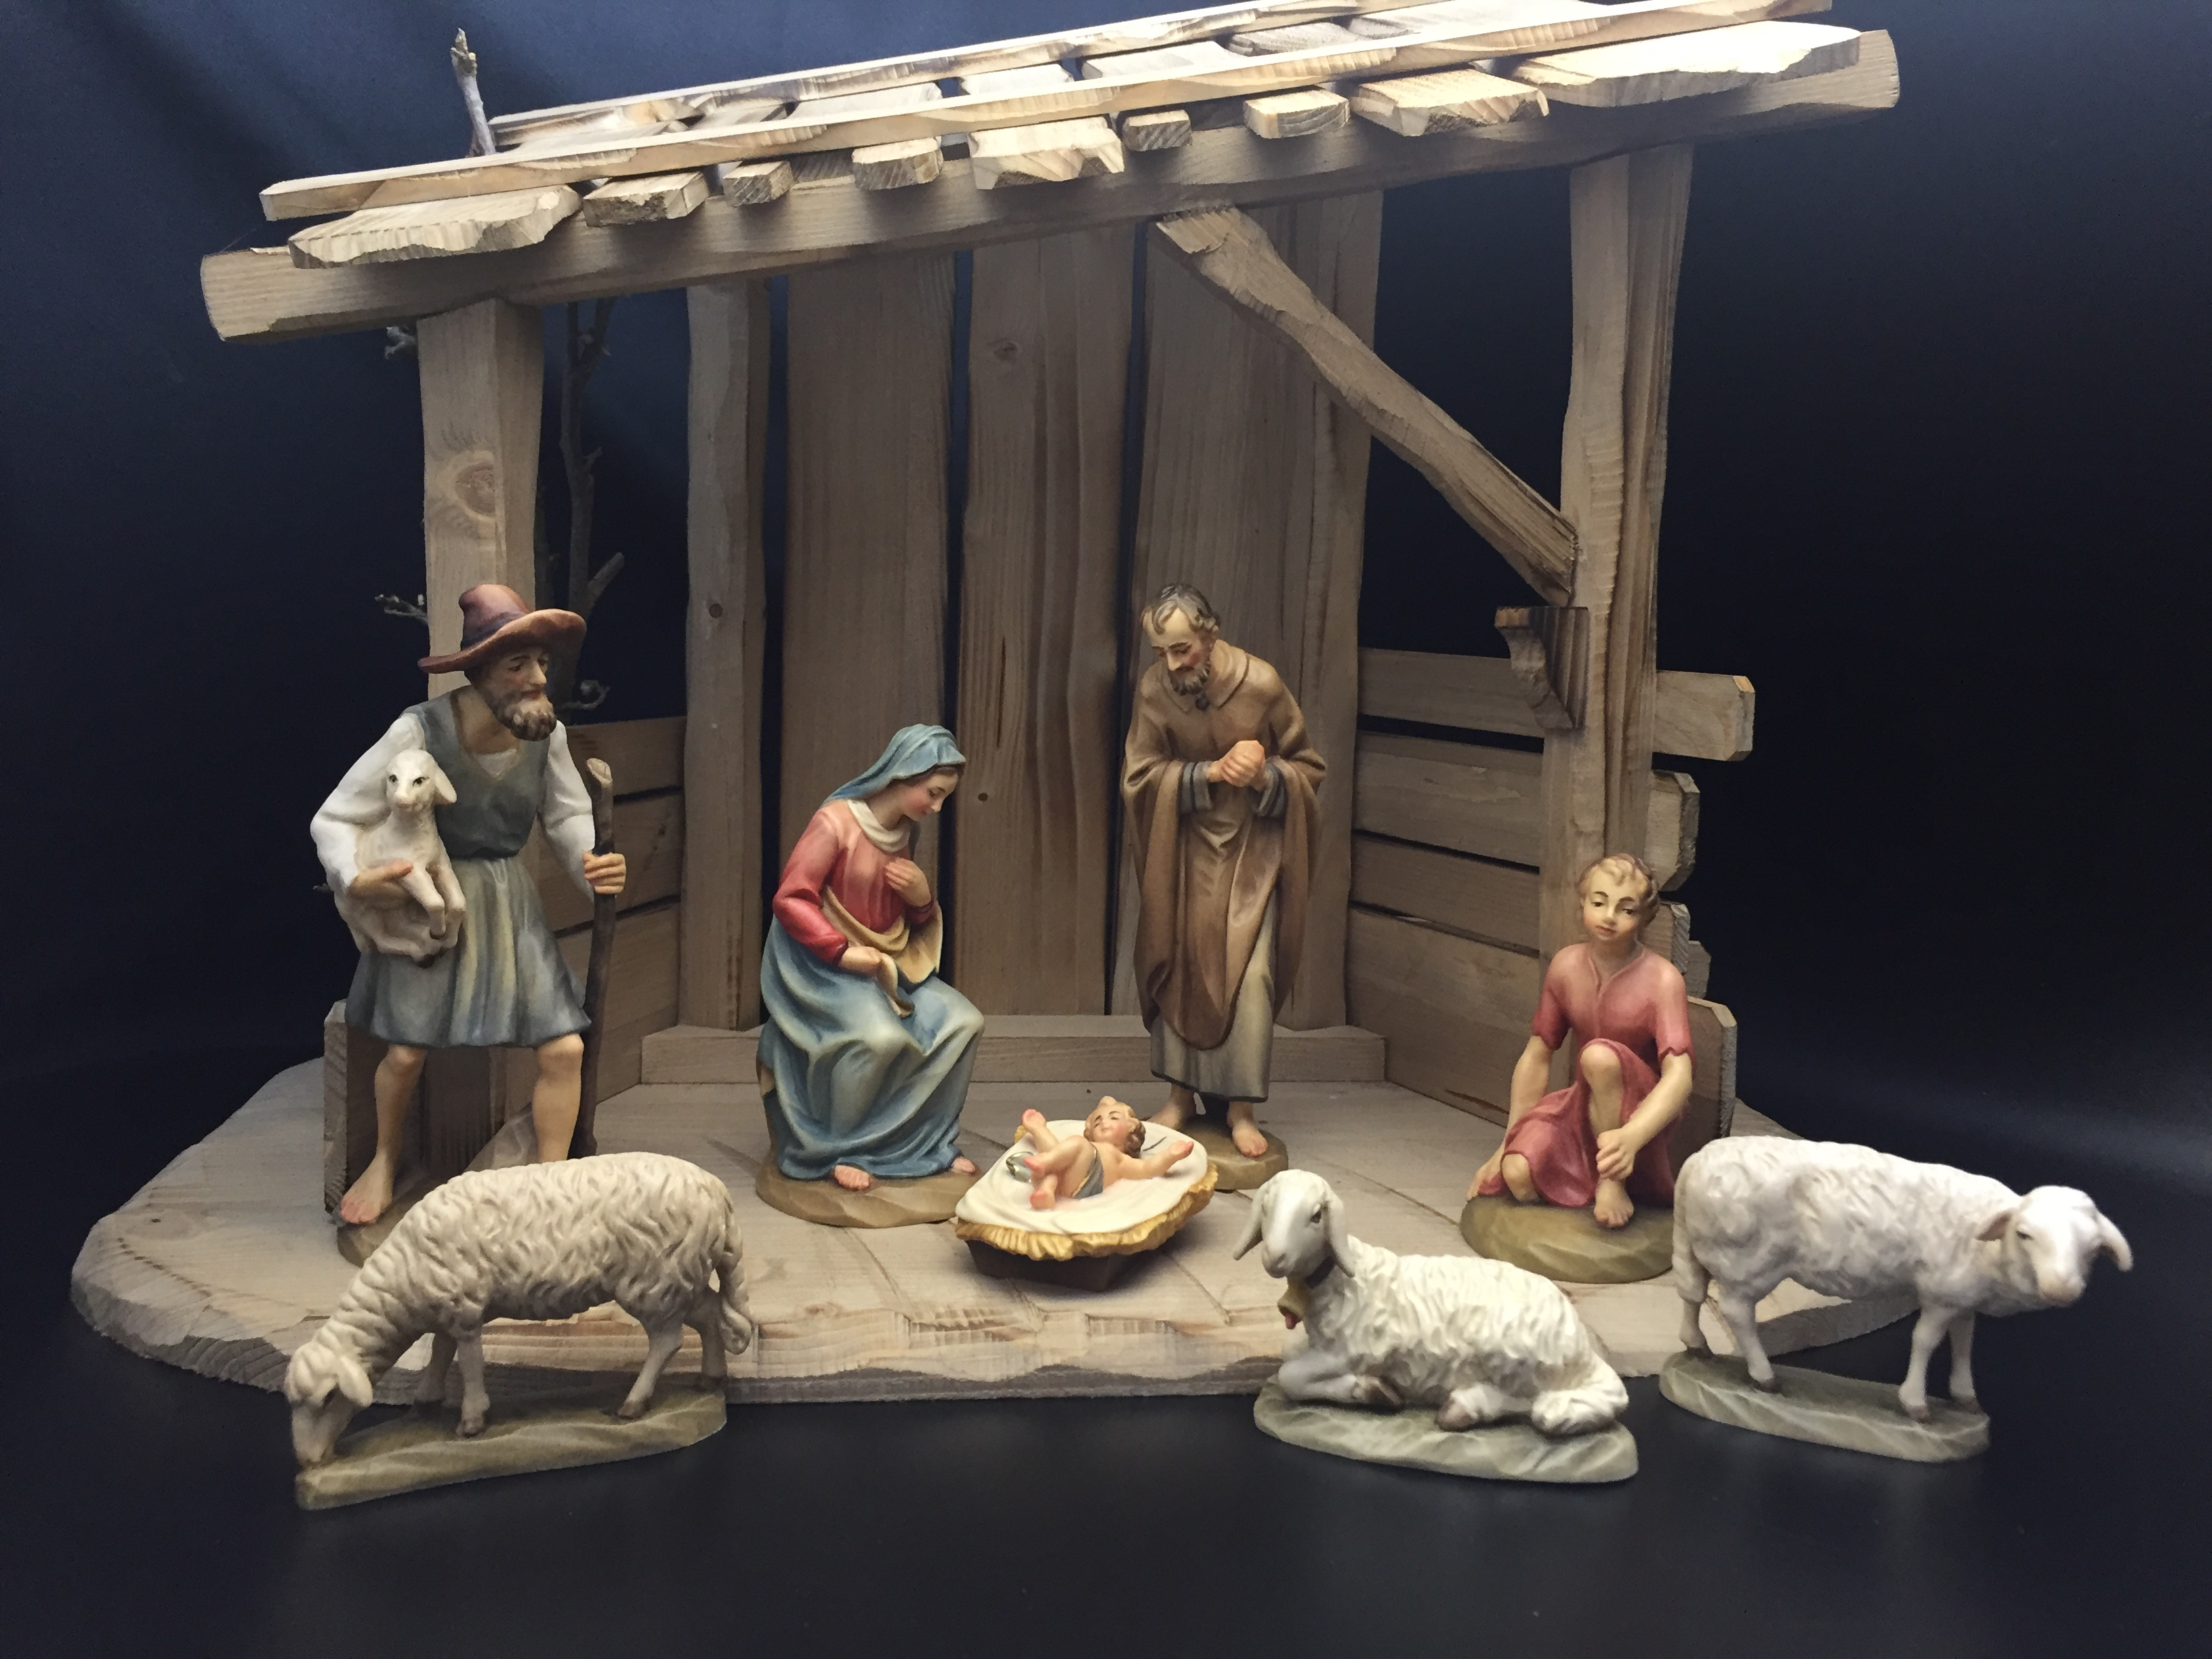 "Anri® Wood Carved Nativity 6"" 8pc Figures with Stable Anri® Wood Carved Nativity 6"" Figures with Stable, ANRI, wood, woodcarved, nativity, italy, creche, krippe, kuolt"